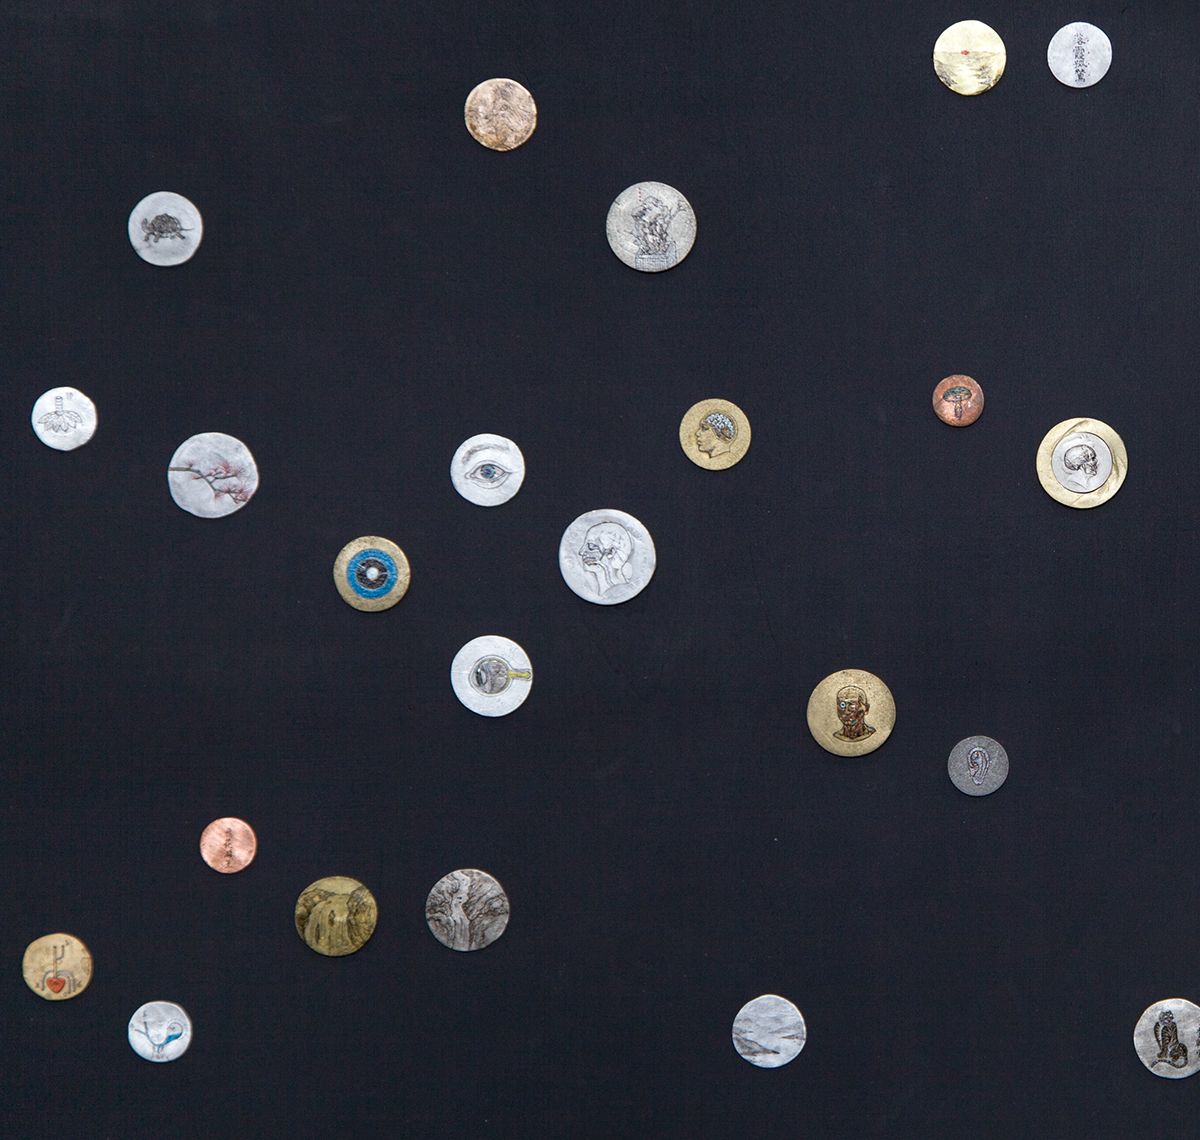 Galaxy, 2012-2015, painted coins, size variable x 80 (approx.) [detail]